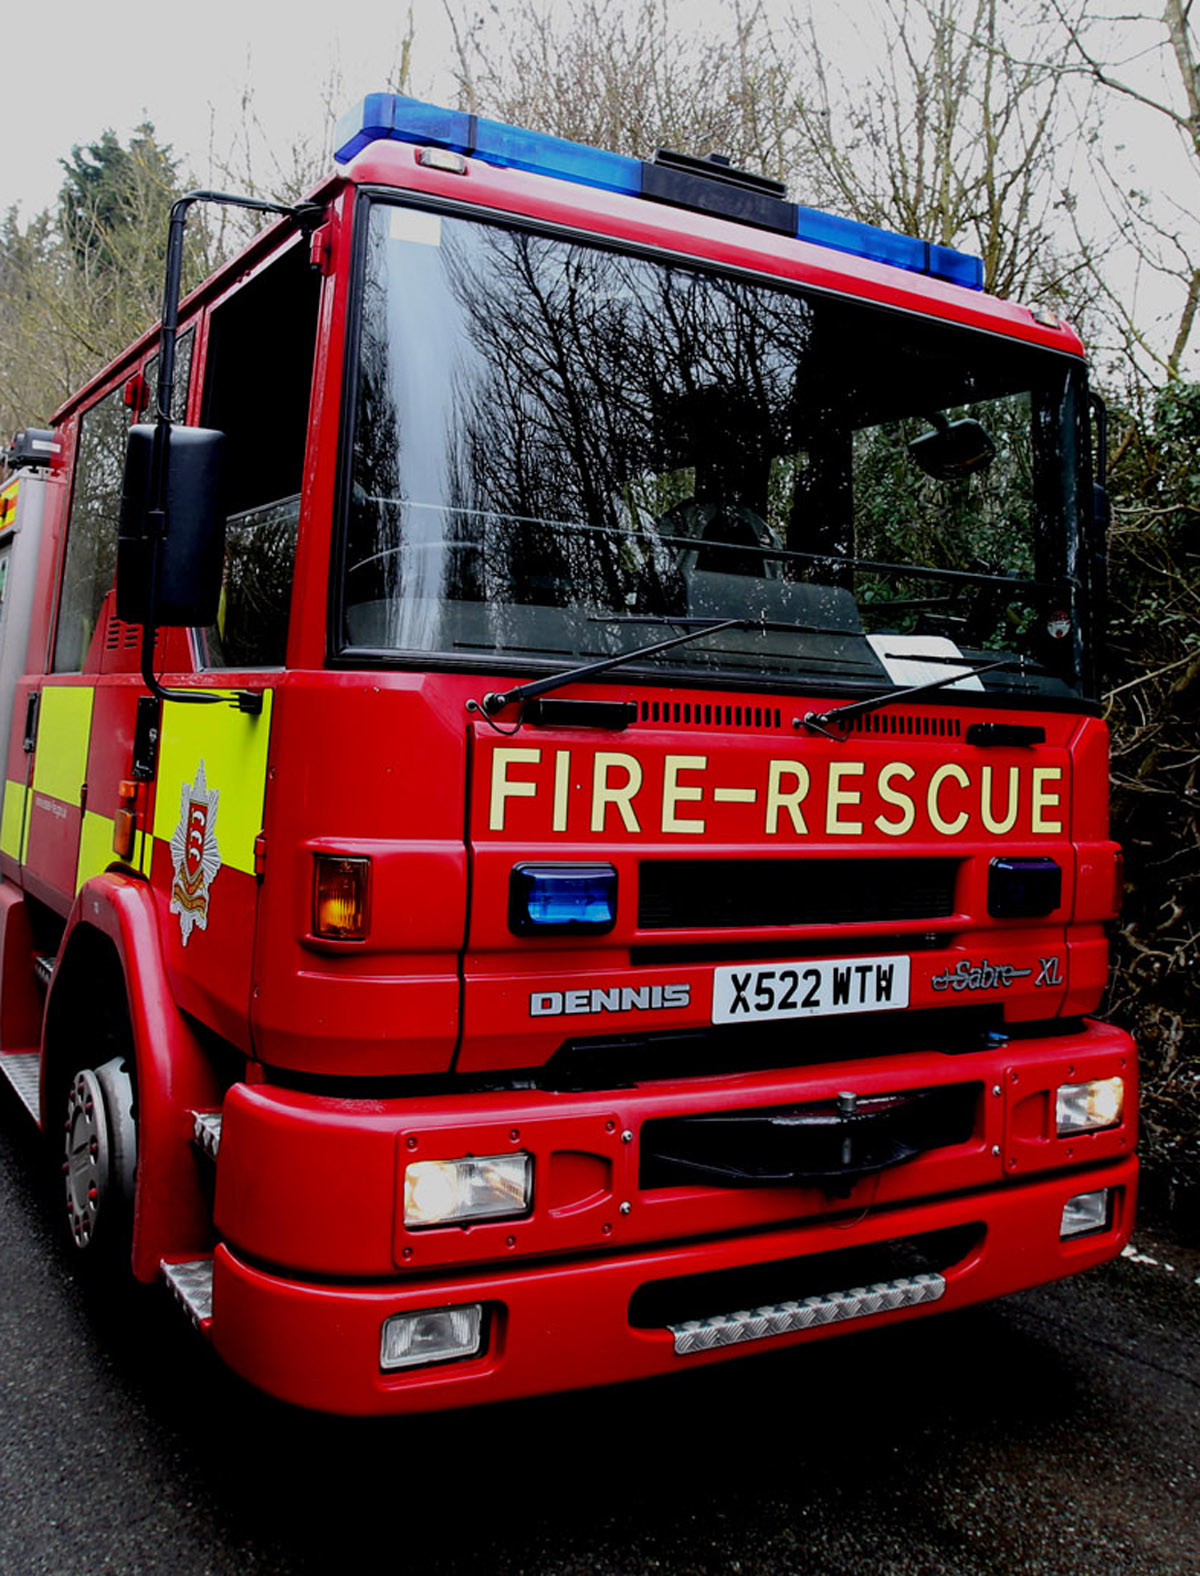 Fire crews attend blaze